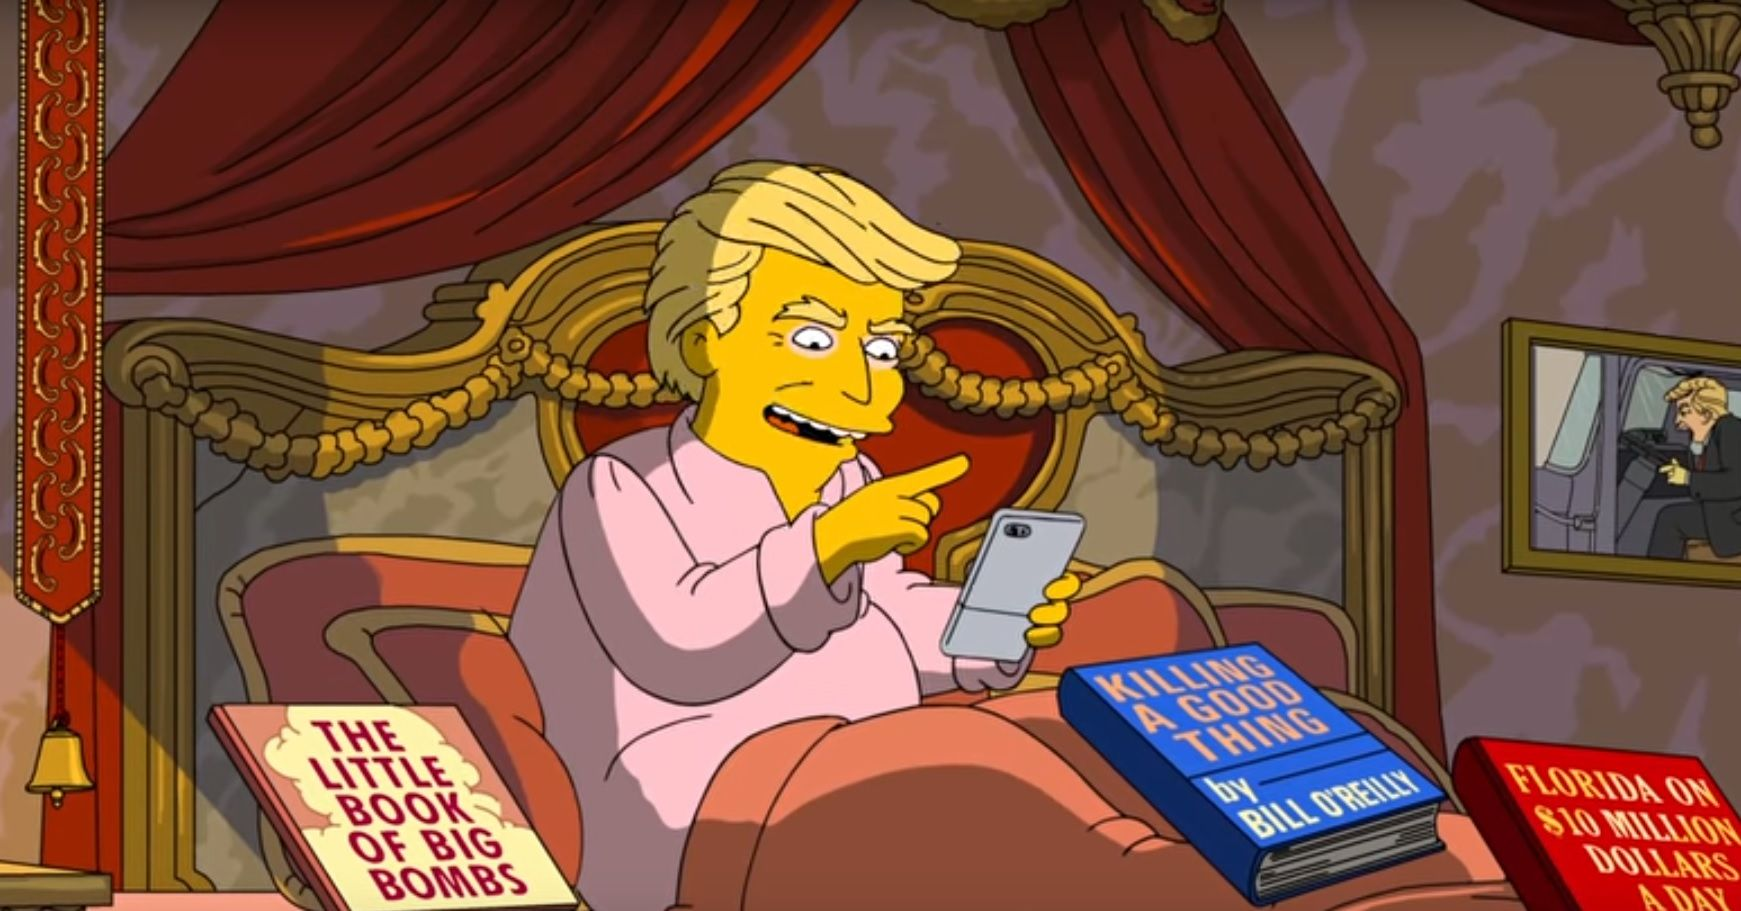 Trump's first 100 days in The Simpsons